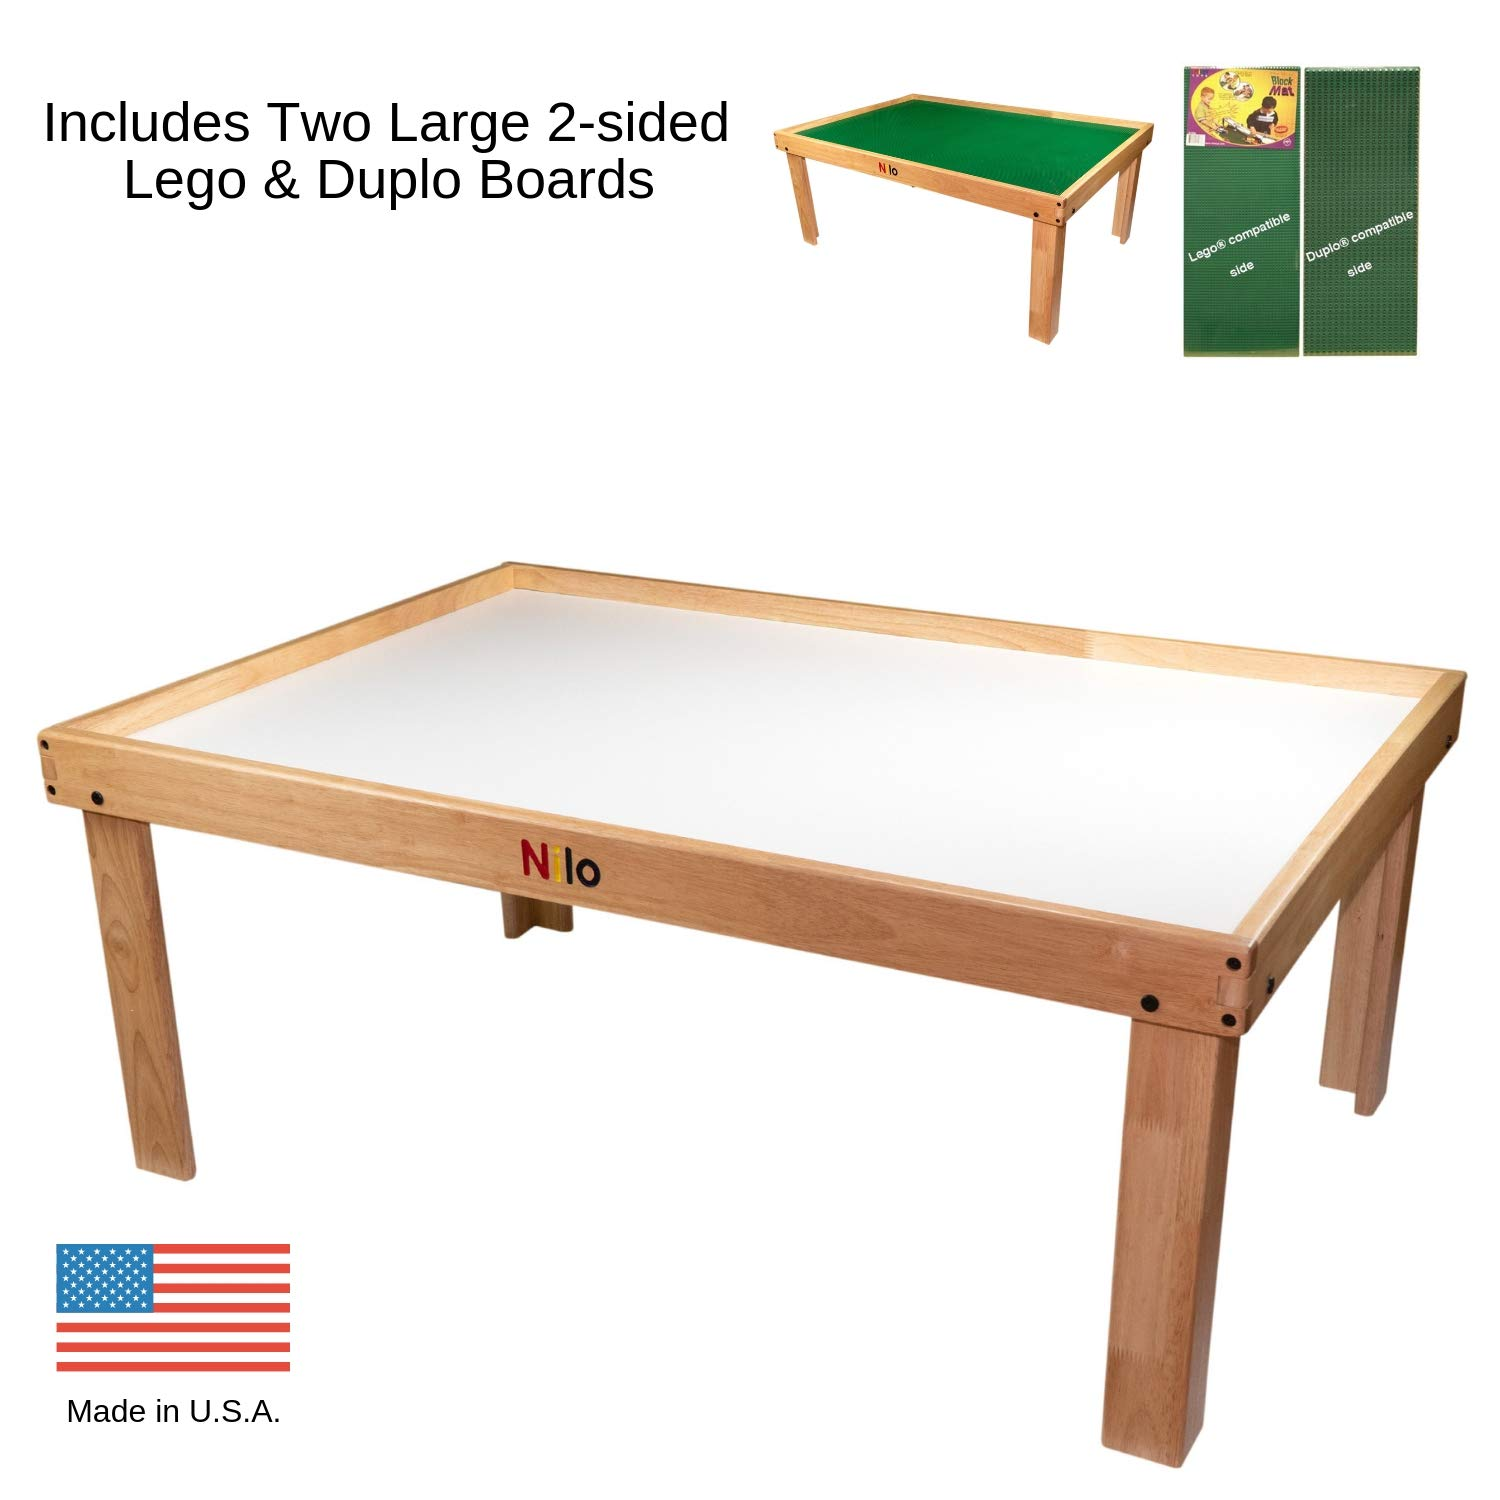 Lego Table with Detachable Two 2-Sided Lego & Duplo Baseplates/ Boards/ Mats by NILO